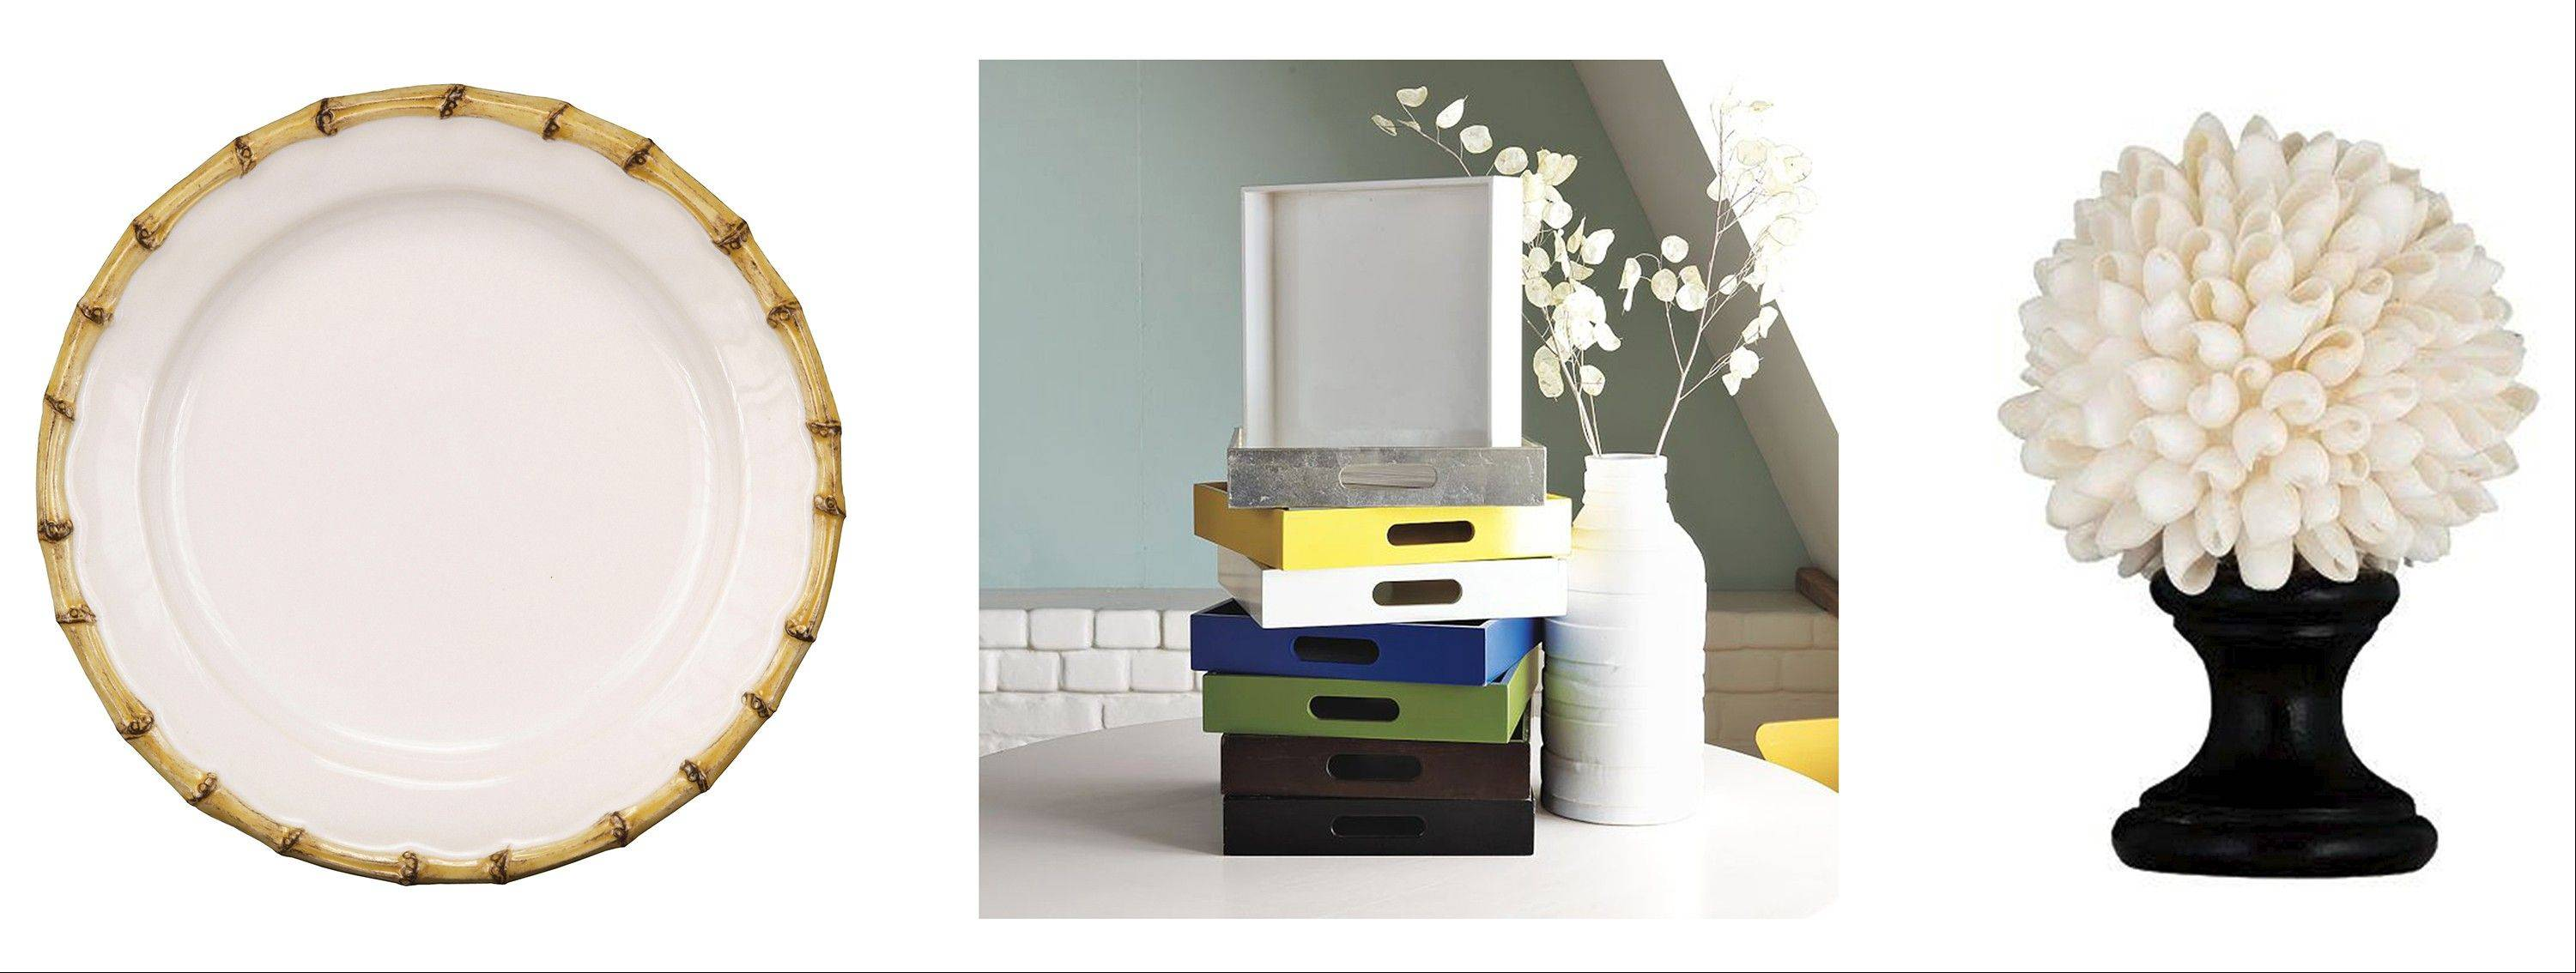 Left to right: Bamboo-edged dinnerware adds a whimsical touch; all beach houses should have an assortment of trays, such as these square lacquer trays from West Elm; the White Angel Wing shell finial provides an example of a surprising place to use shells: on a curtain rod.